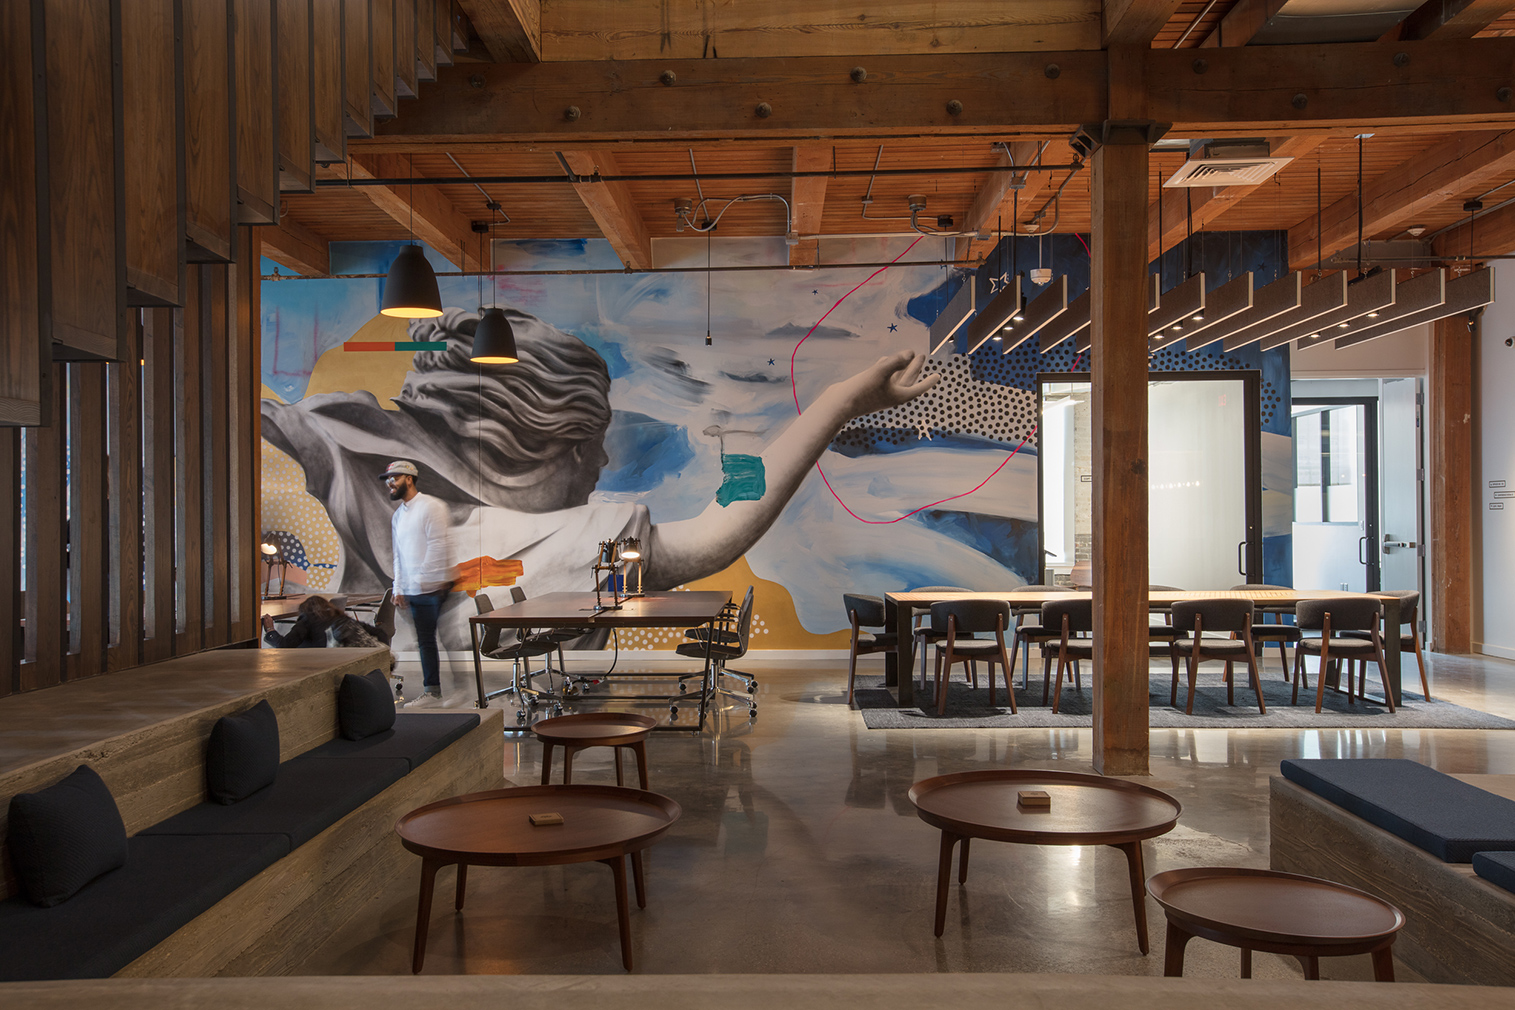 The Shop coworking space in New Orlean's CAC gallery